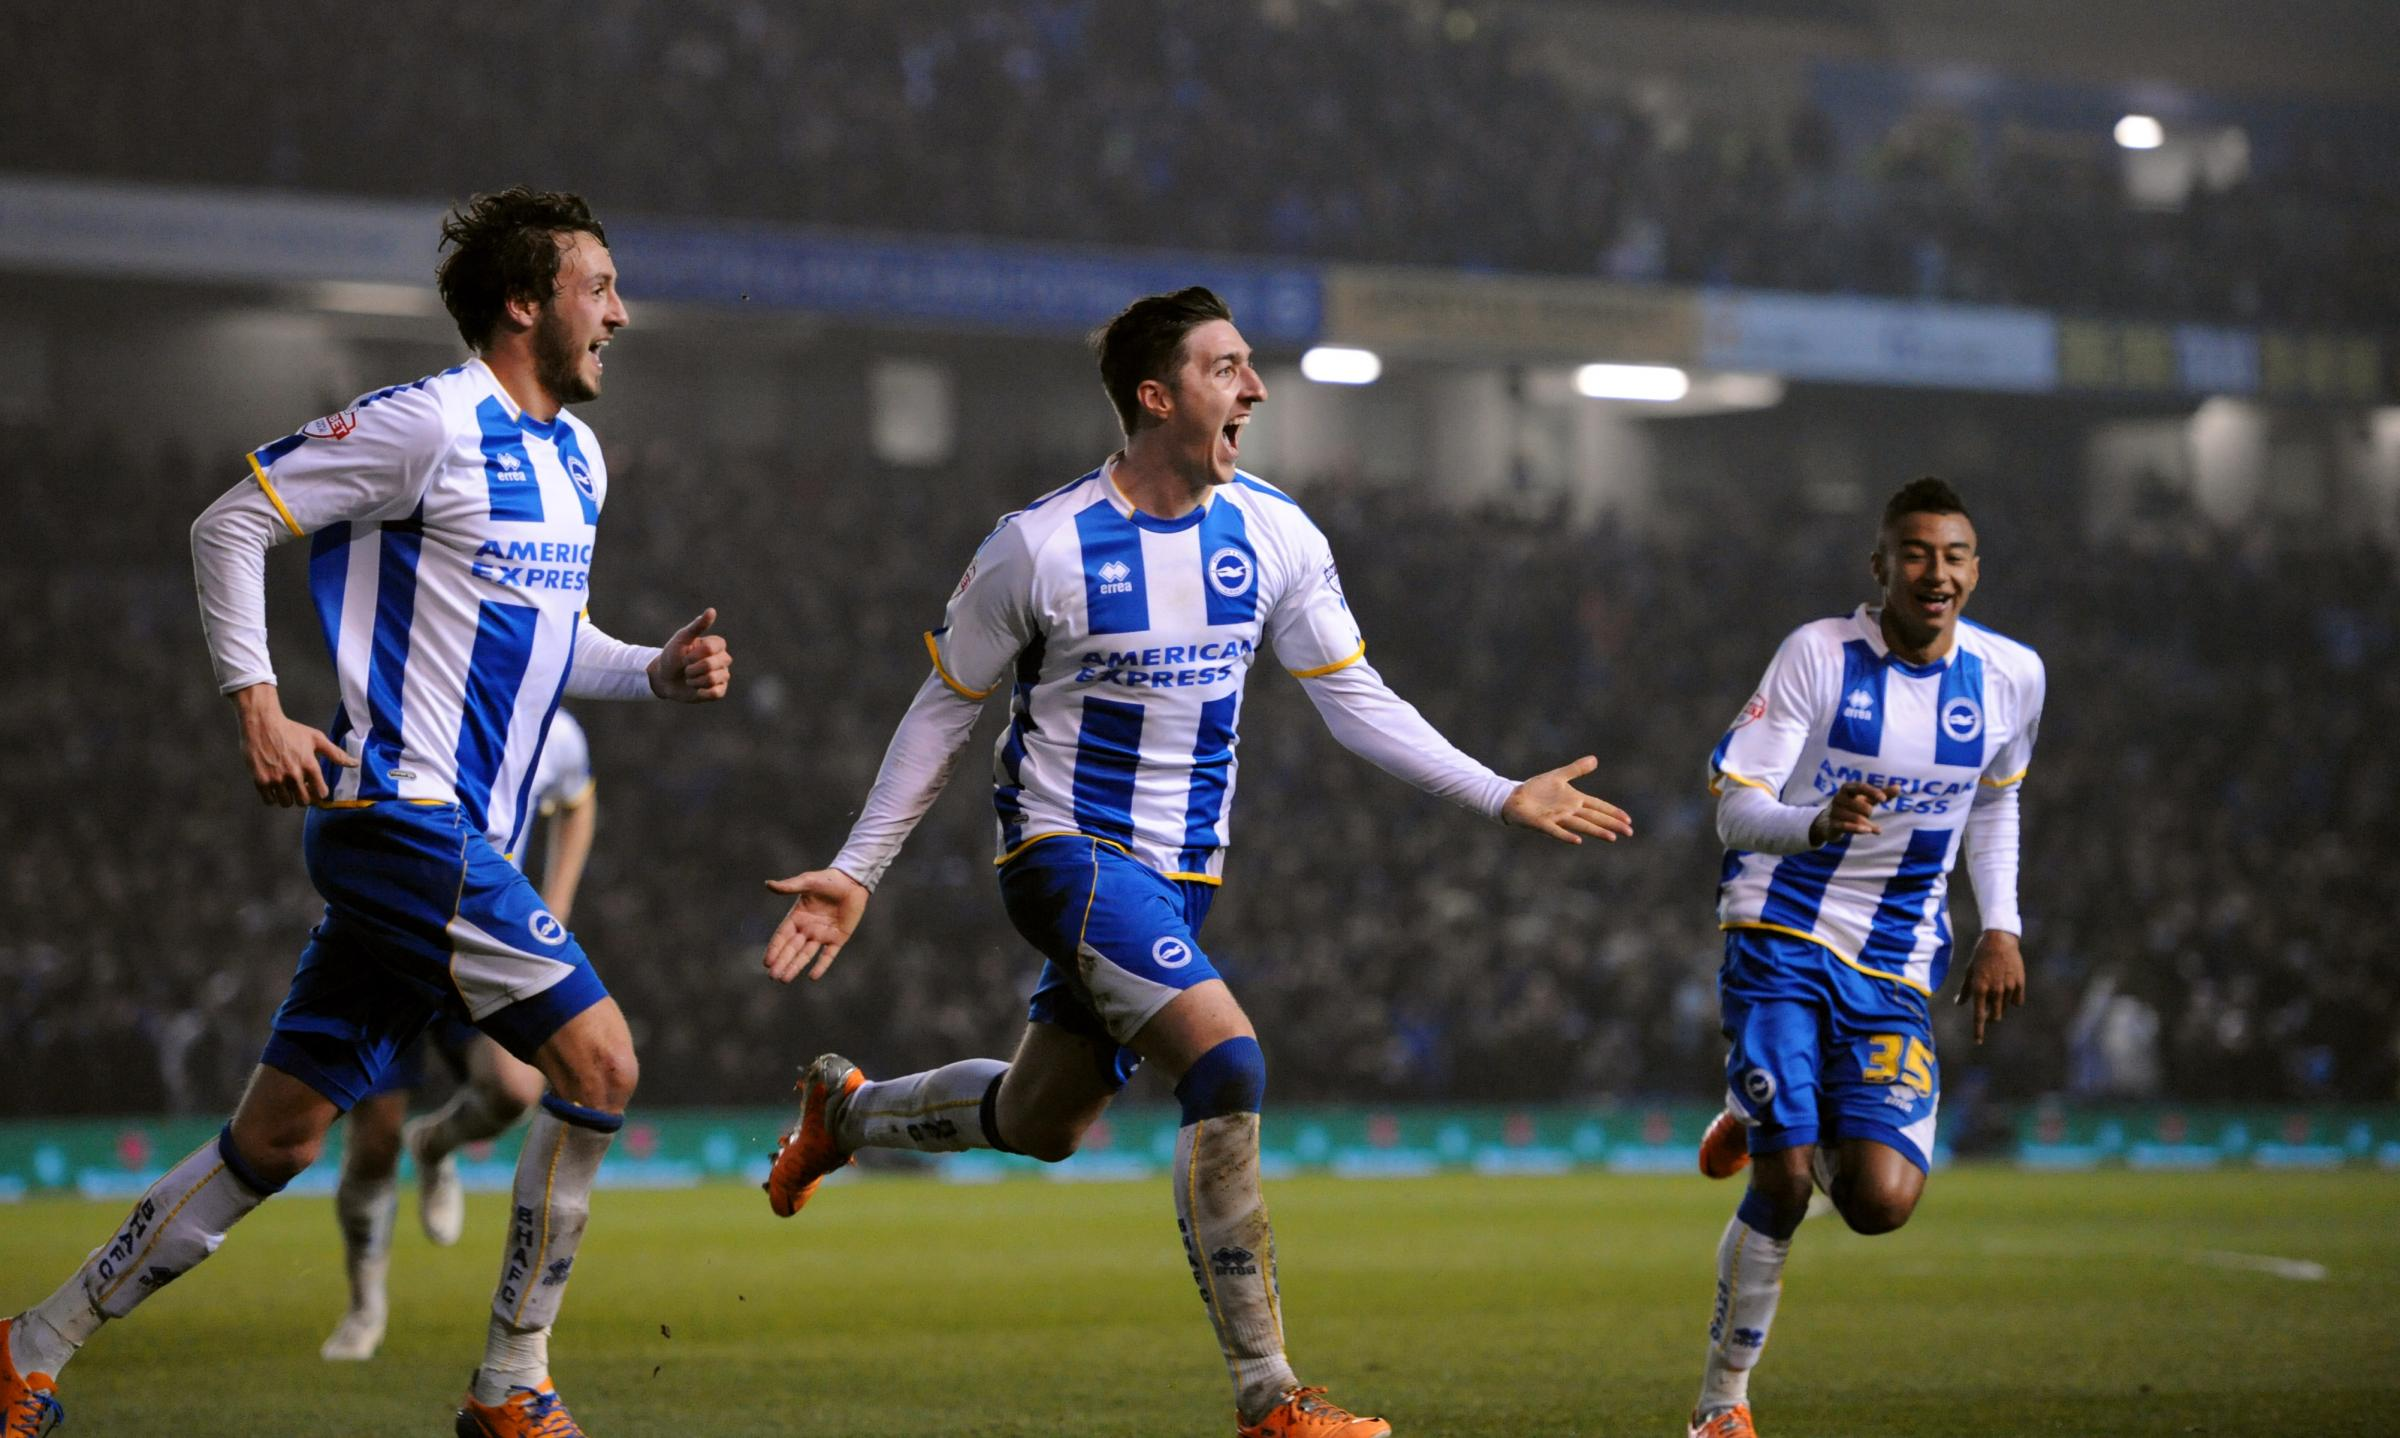 Stephen Ward scored the clincher against QPR which puts Albion in sight of a play-off spot